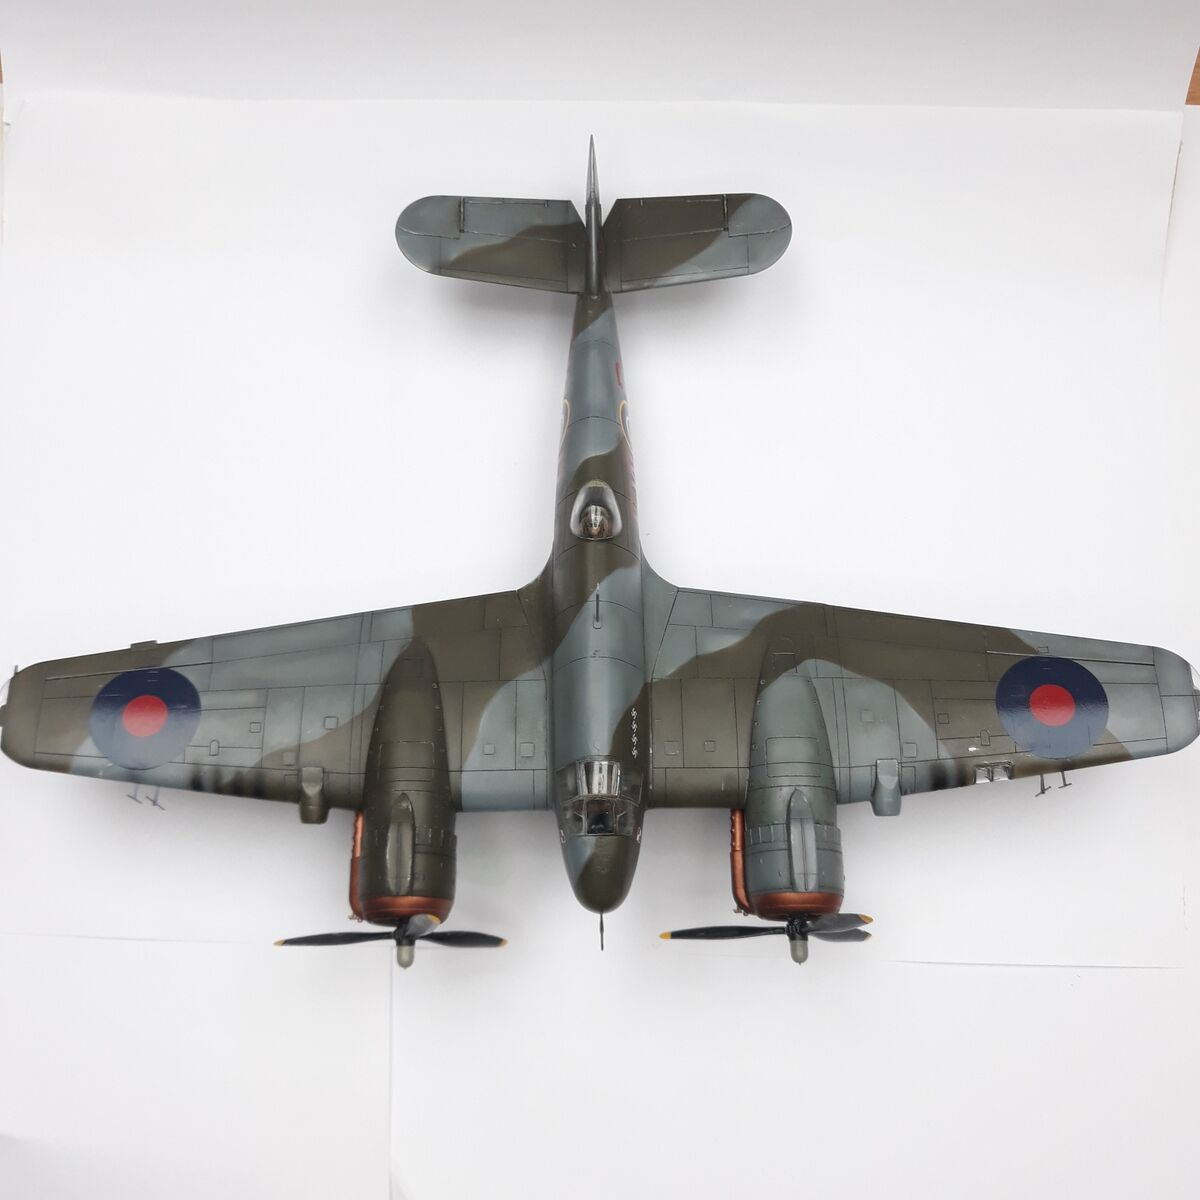 Beaufighter Mk.VI dyw.307 - 001 - Image 1